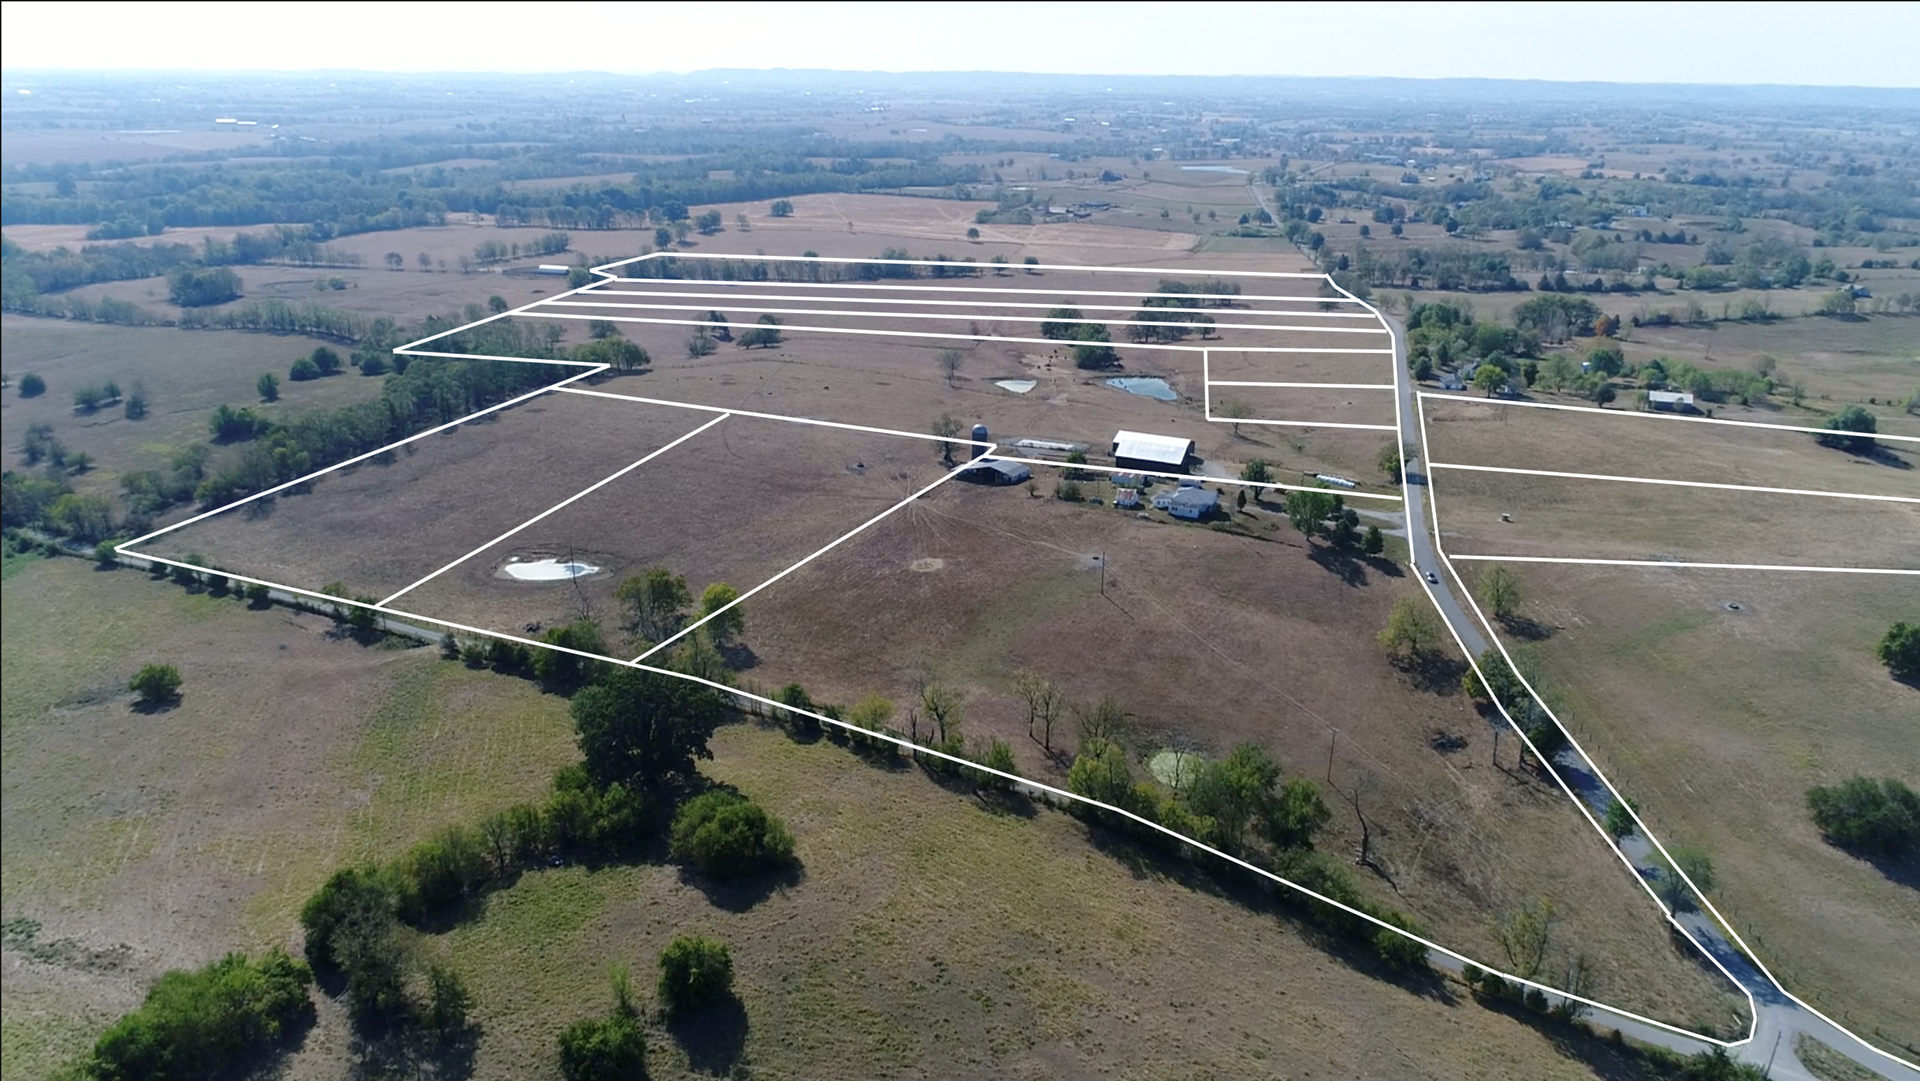 ABSOLUTE FARM AUCTION - 146 Acres in Tracts - Quirks Run Rd - Danville KY